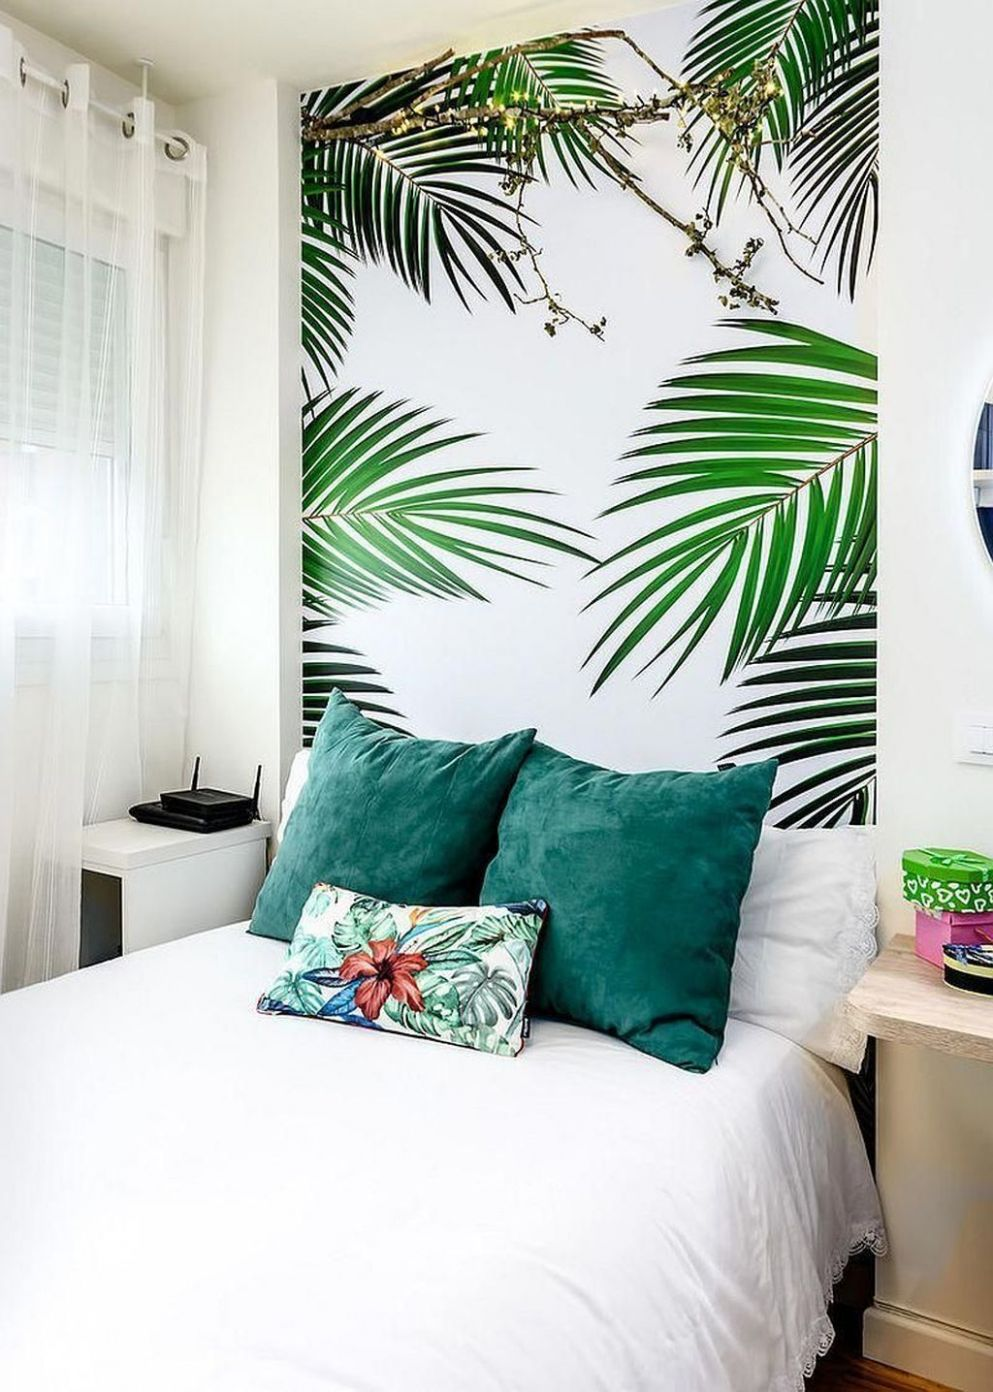 12 Relaxing Tropical Bedroom Colors | Home decor bedroom, Tropical ..